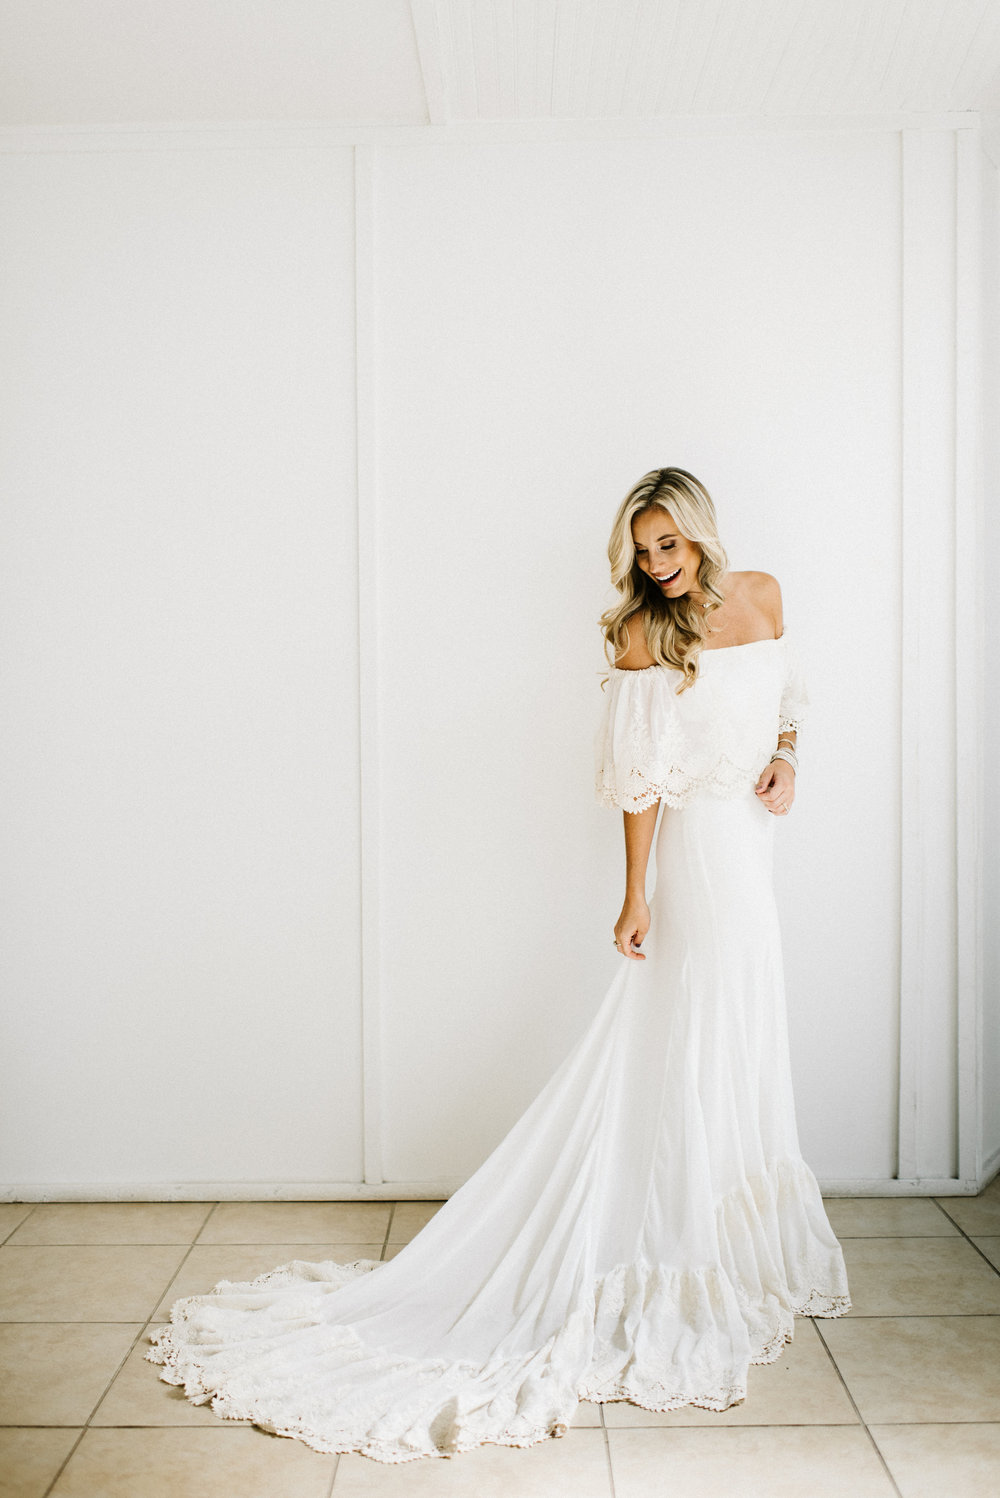 Rebecca-Read-Photography-brooke-jeremy-lang-farm-wedding-daughters-of-simone-lu-boho-wedding-southern-wedding-ivory-and-beau-bridal-boutique-savannah-bridal-boutique-savannah-wedding-dresses-lowcountry-bride-savannah-wedding-planner-5.jpg